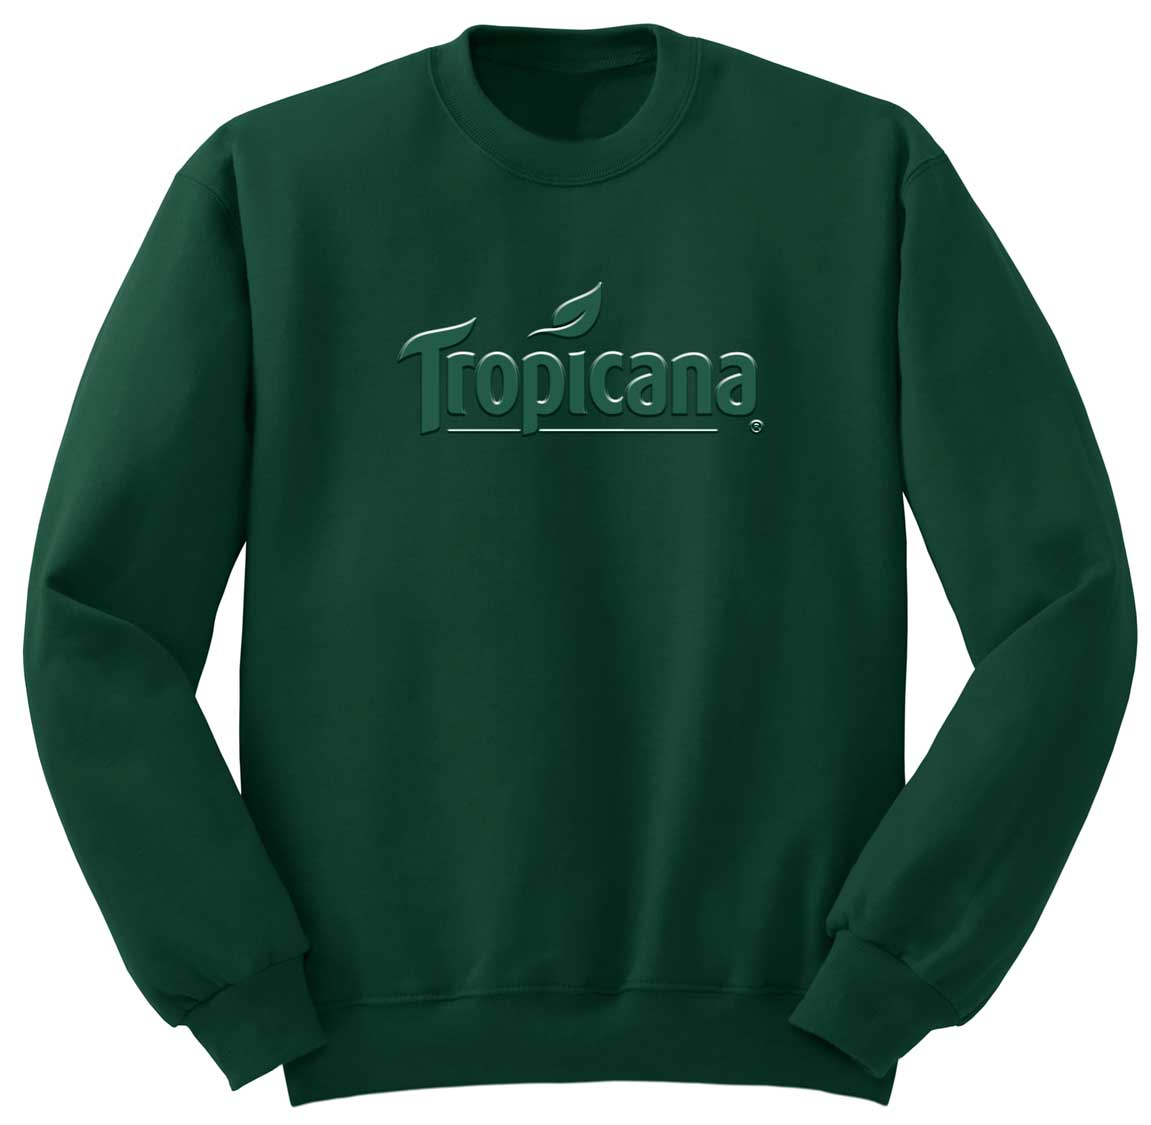 Comfort Zone Sweatshirt - Tropicana